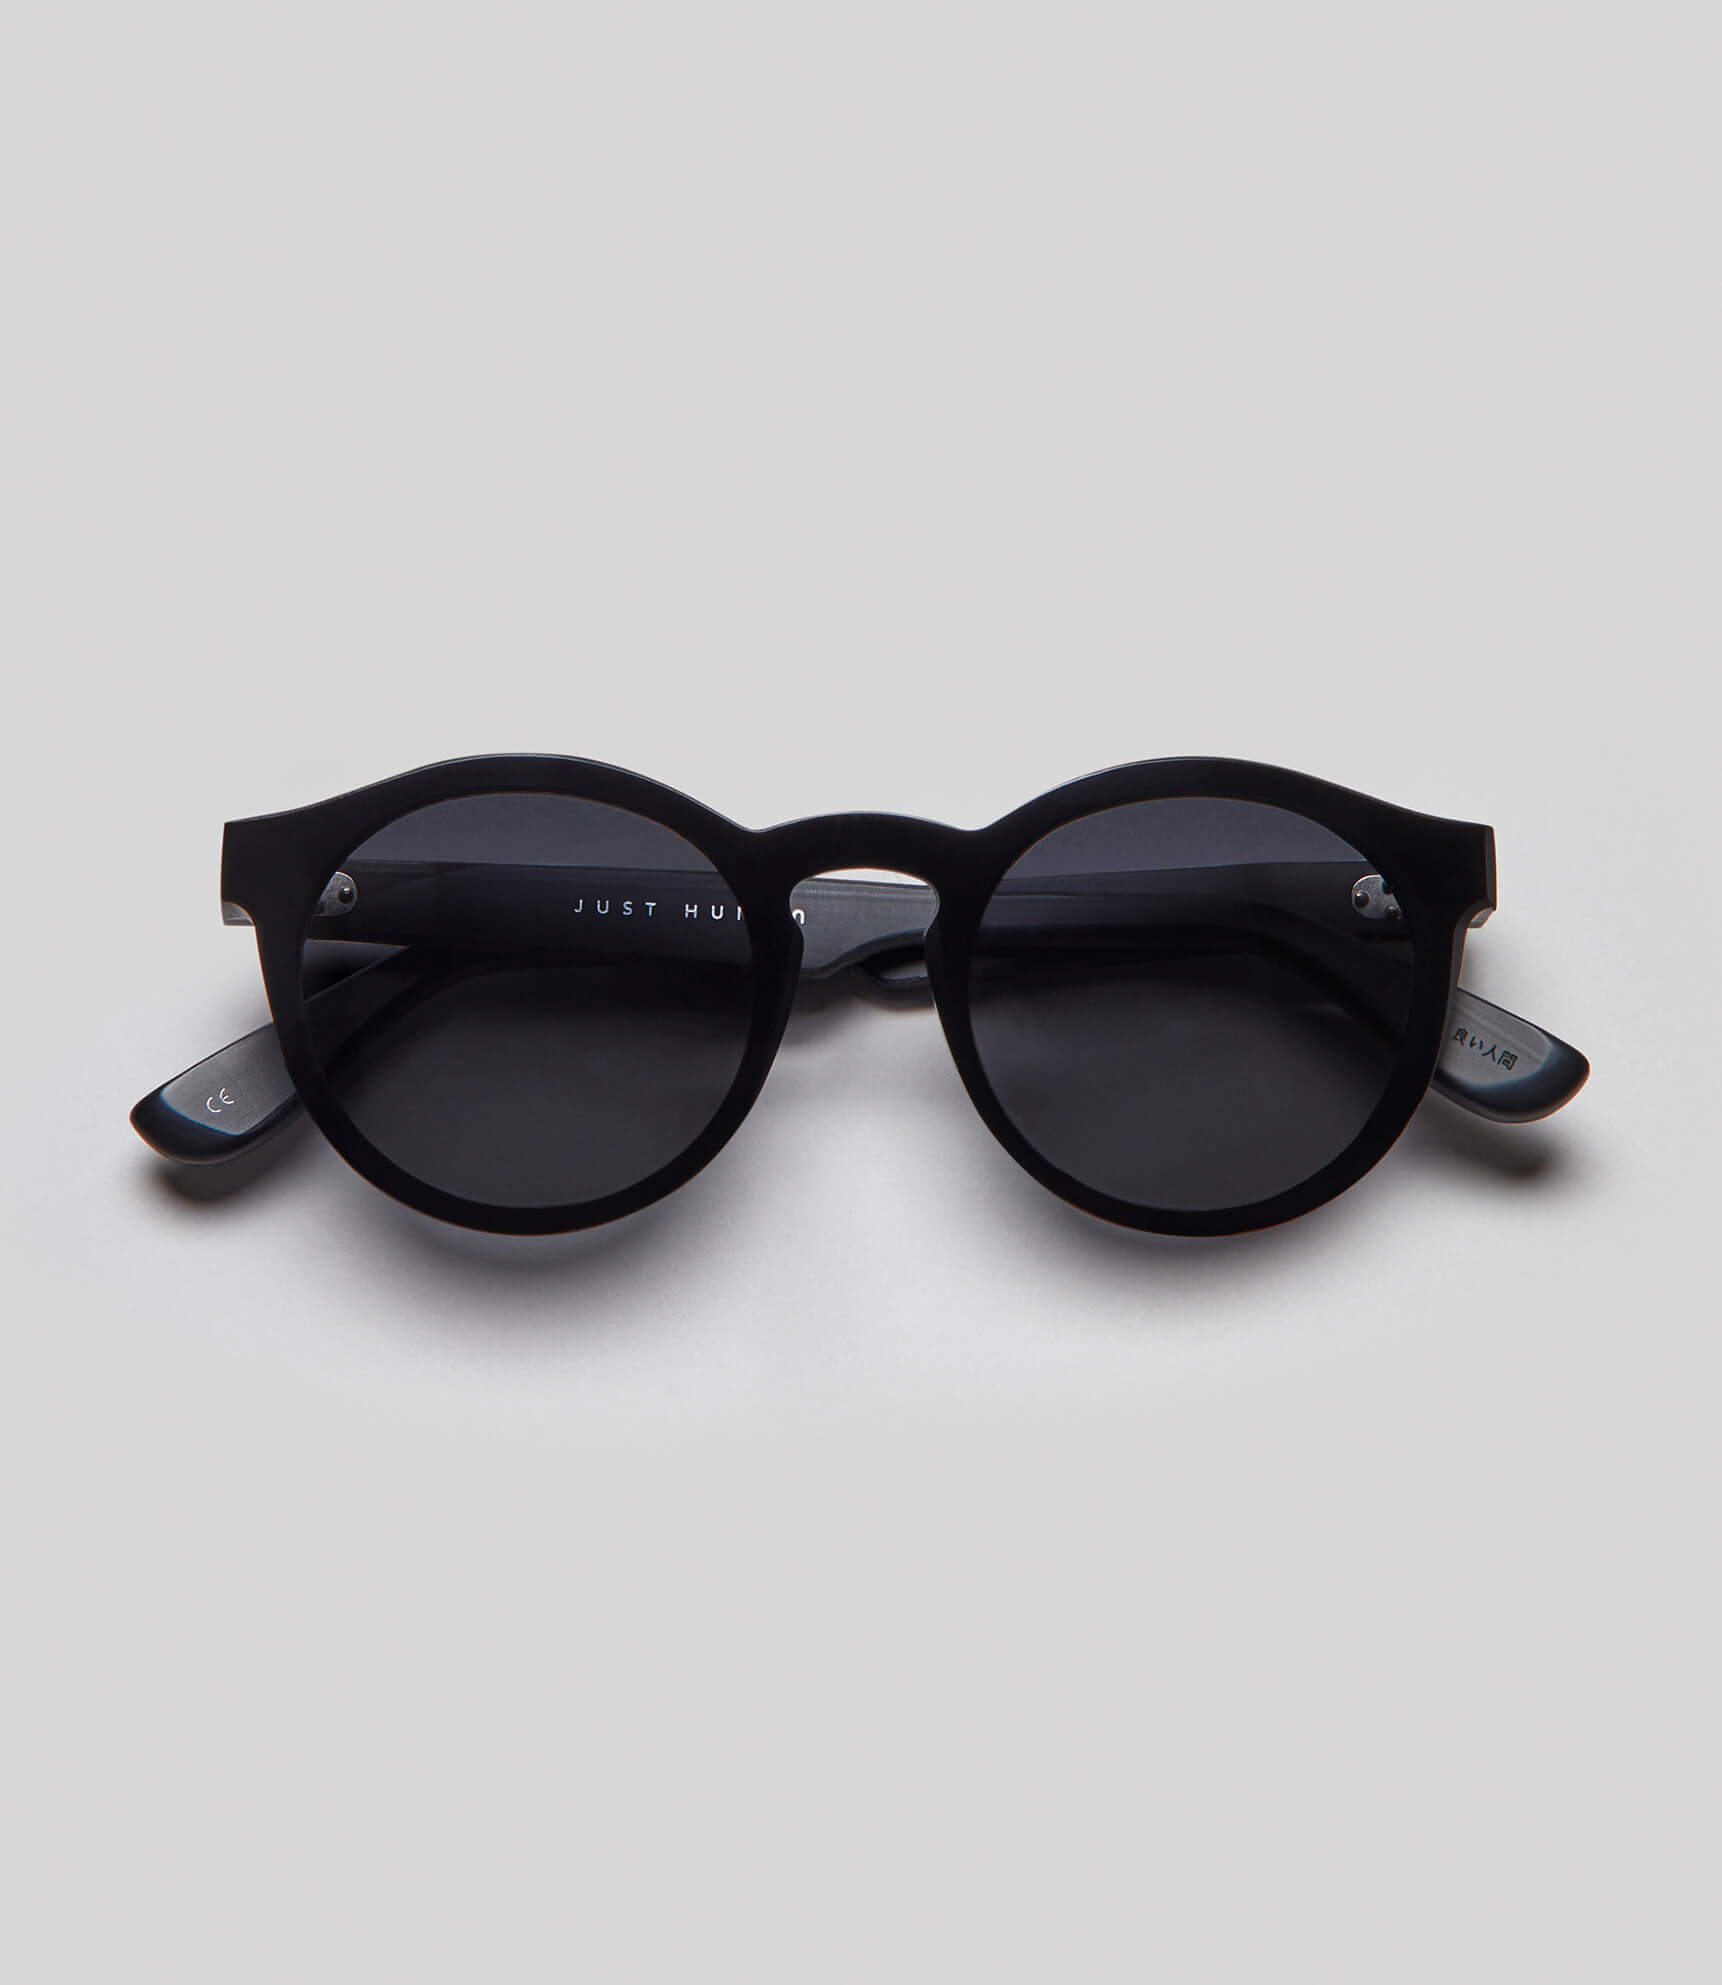 Round black sunglasses eco friendly sustainable fashion made in Japan unisex sunglasses for men sunglasses for women and blue light filter